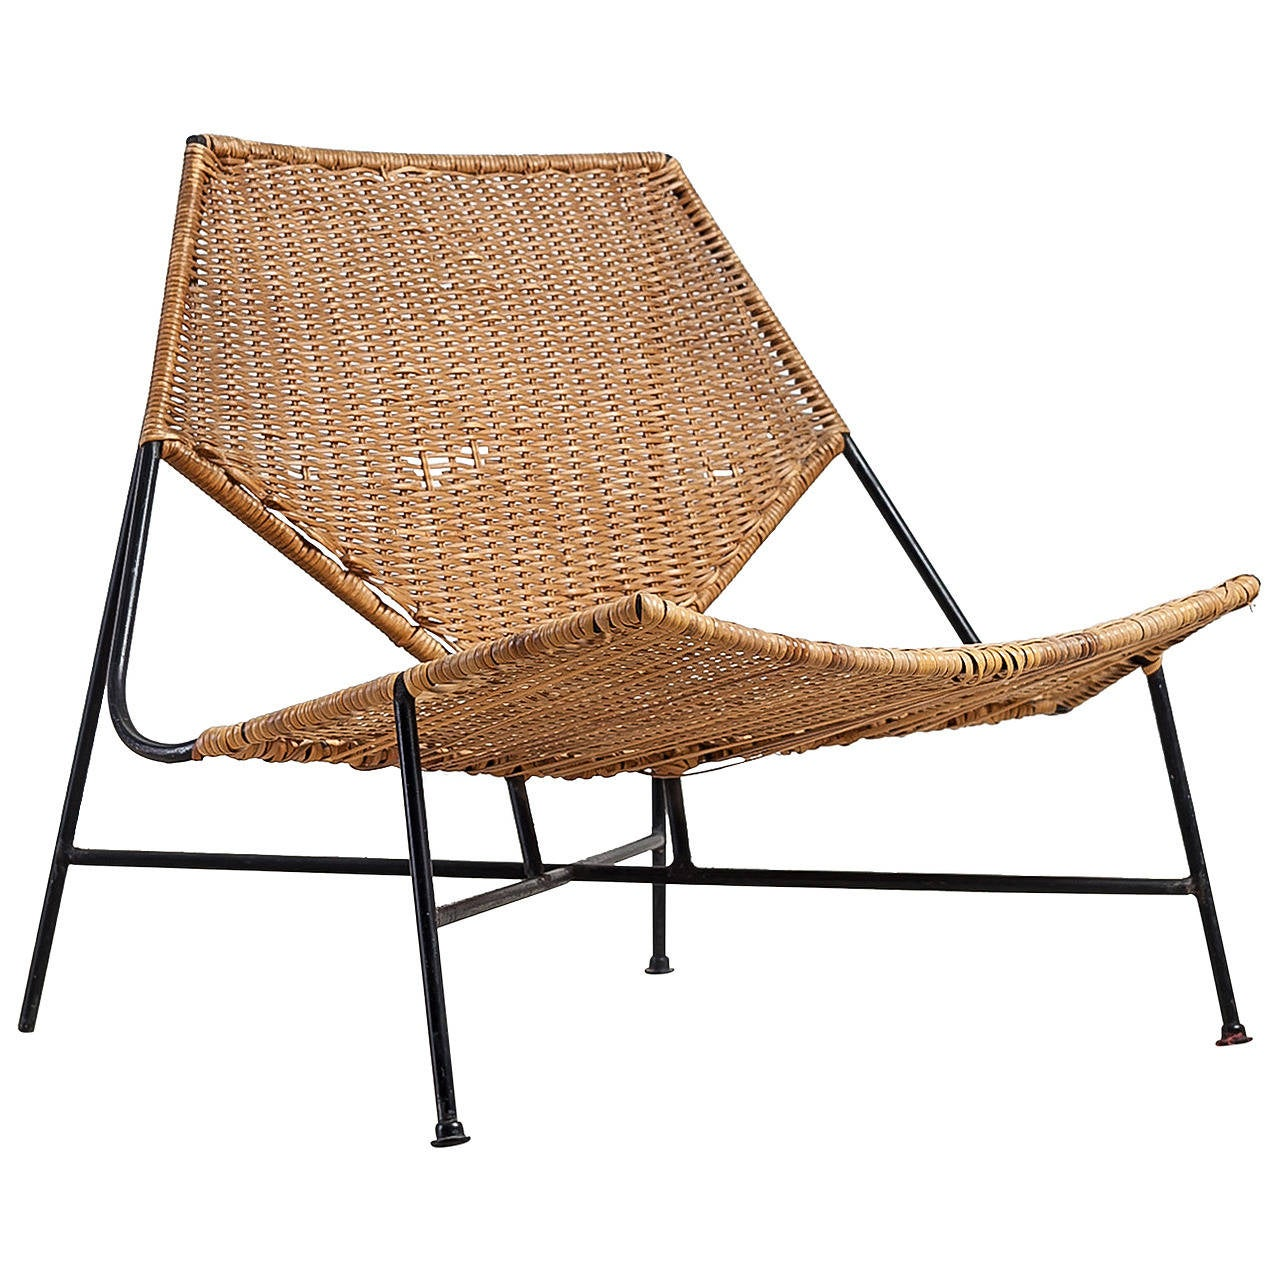 arthur umanoff rattan lounge chair at 1stdibs. Black Bedroom Furniture Sets. Home Design Ideas